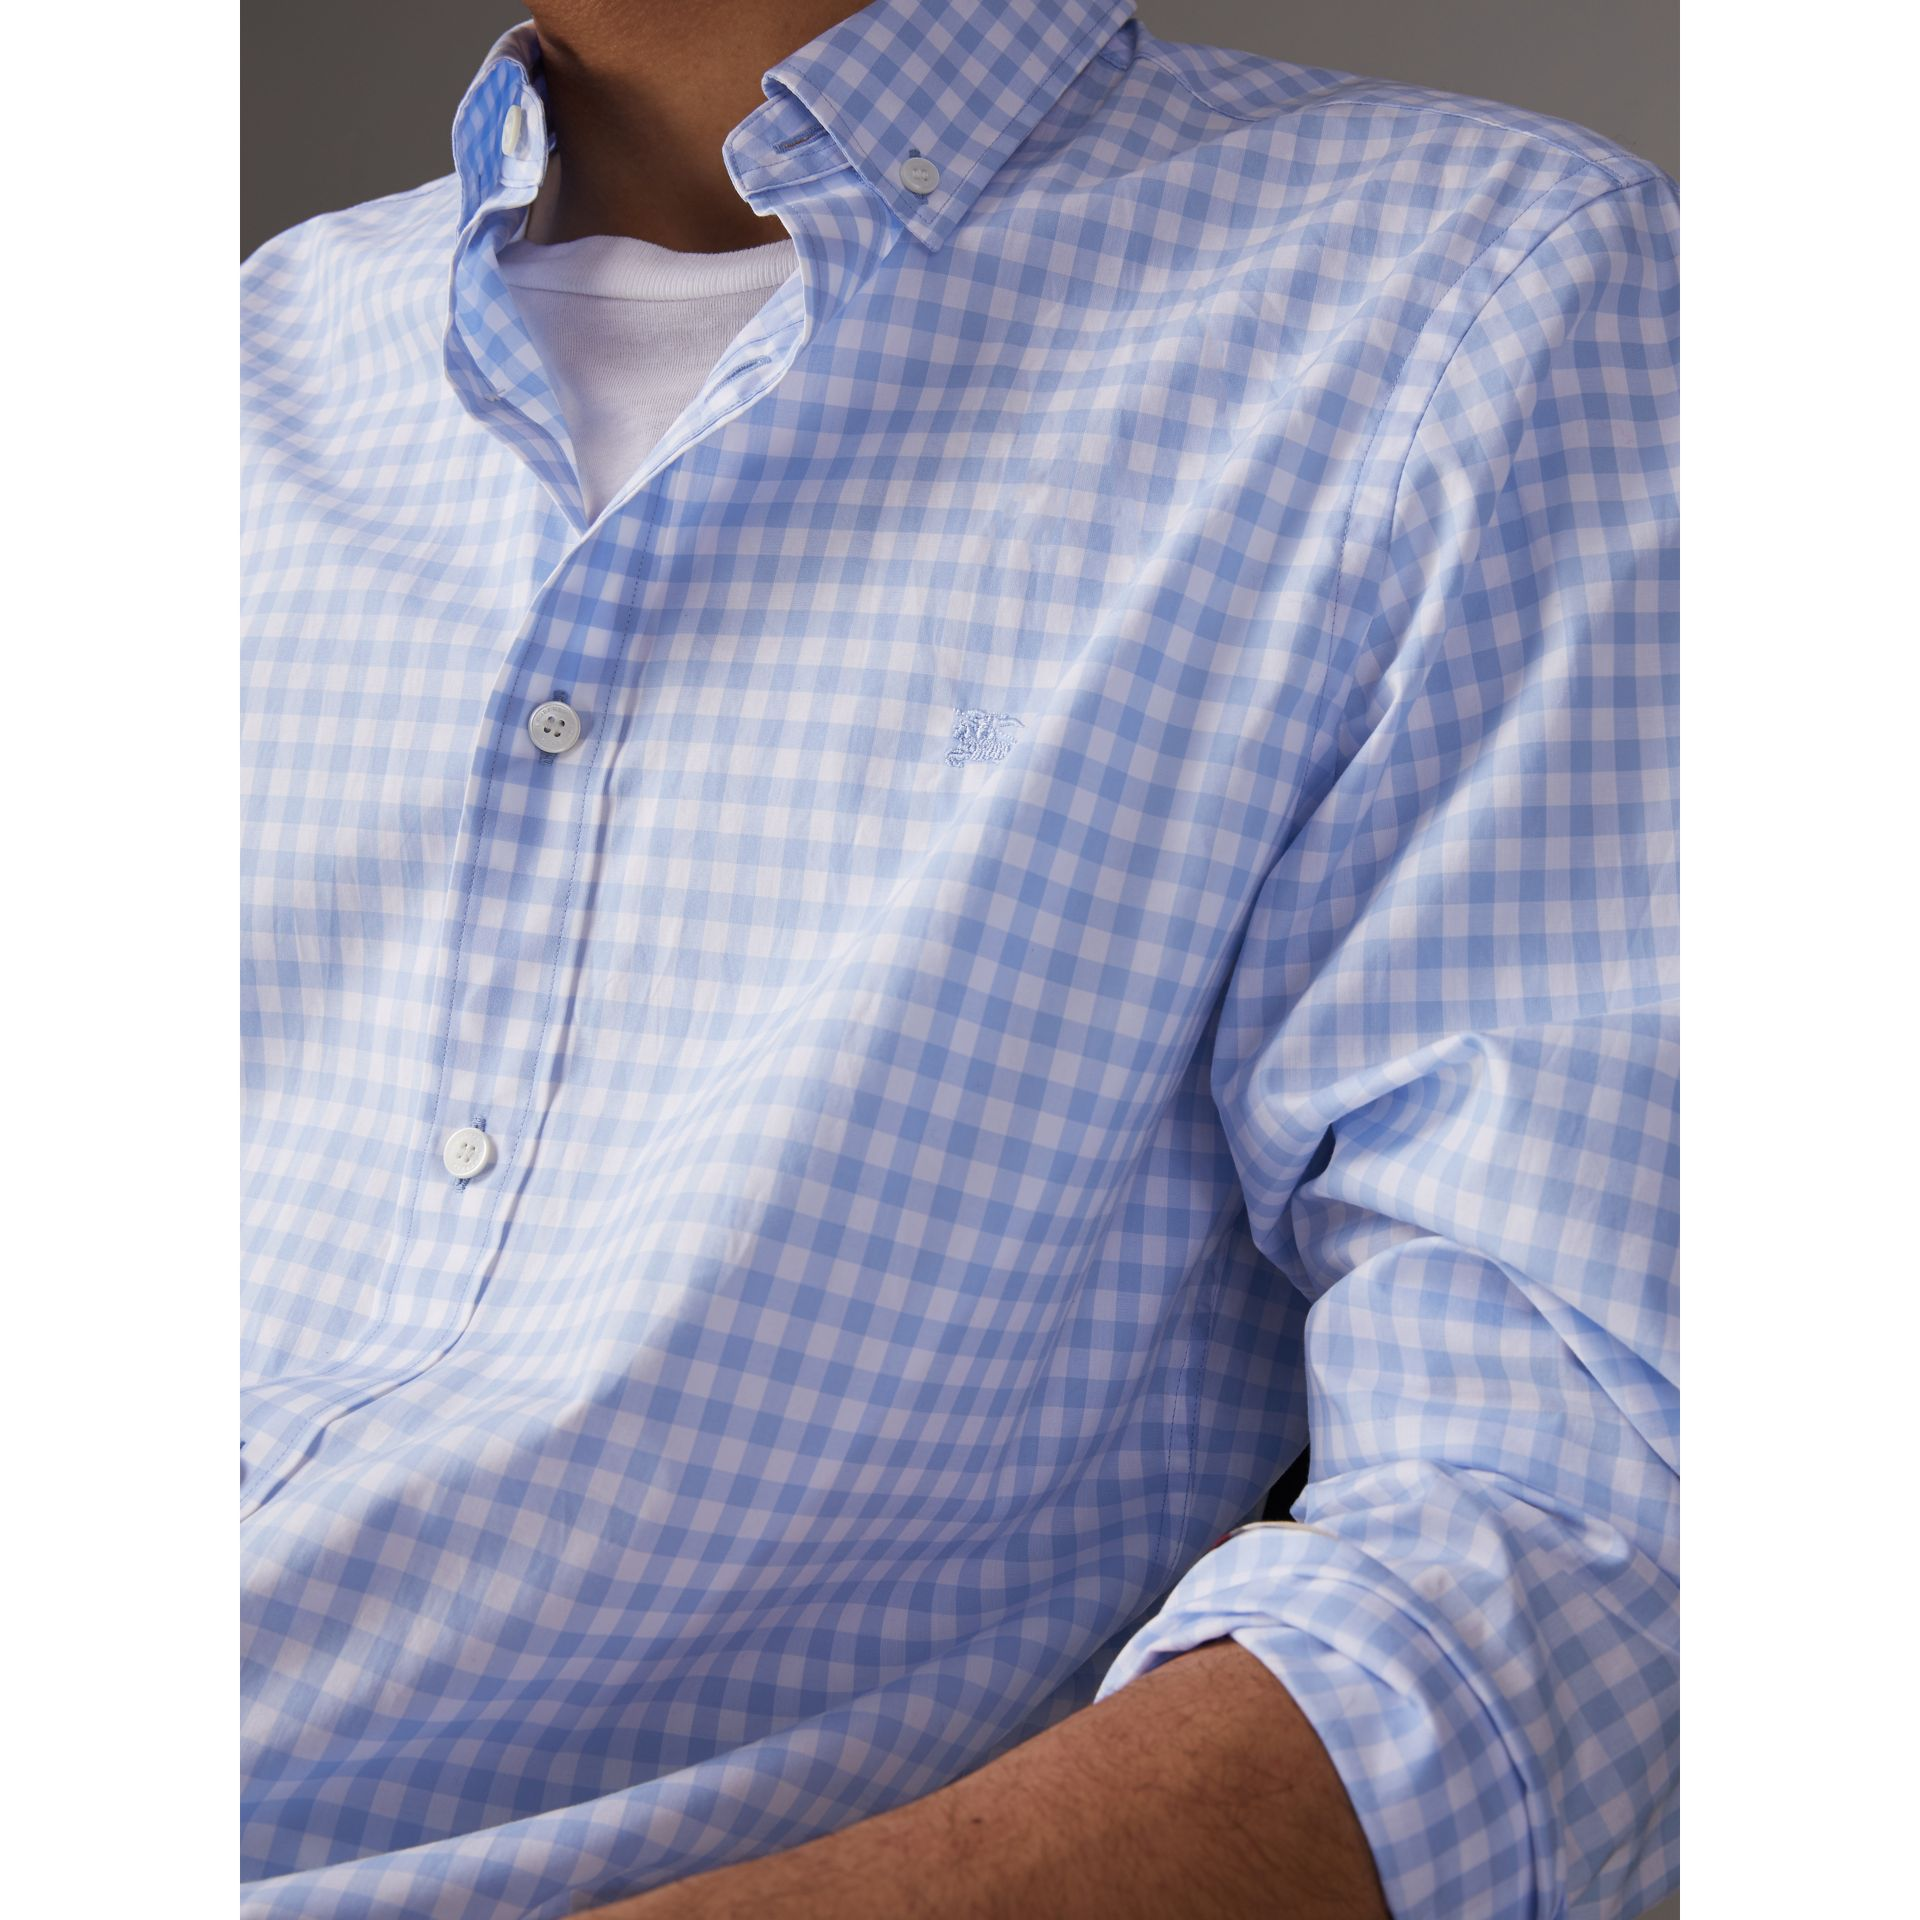 Button-down Collar Gingham Cotton Shirt in Pale Blue - Men | Burberry Singapore - gallery image 2